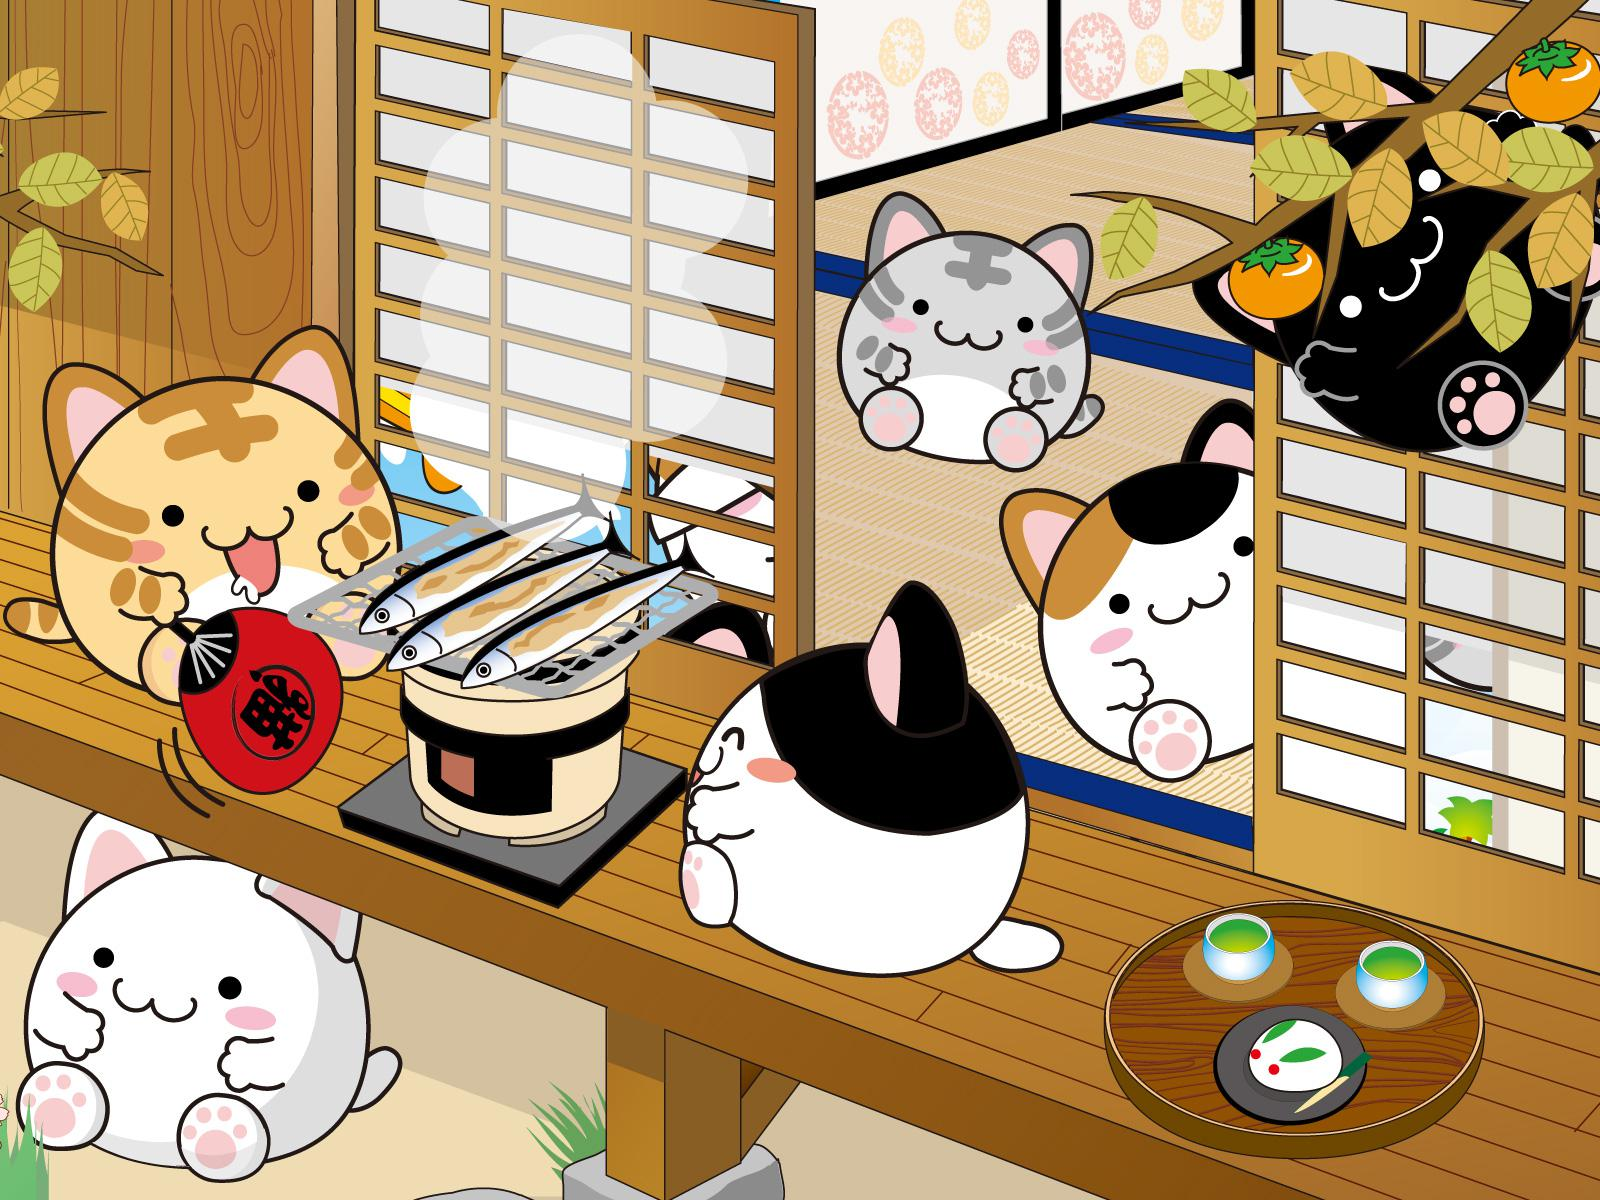 Cute japanese wallpaper wallpapersafari - Cute asian cartoon wallpaper ...